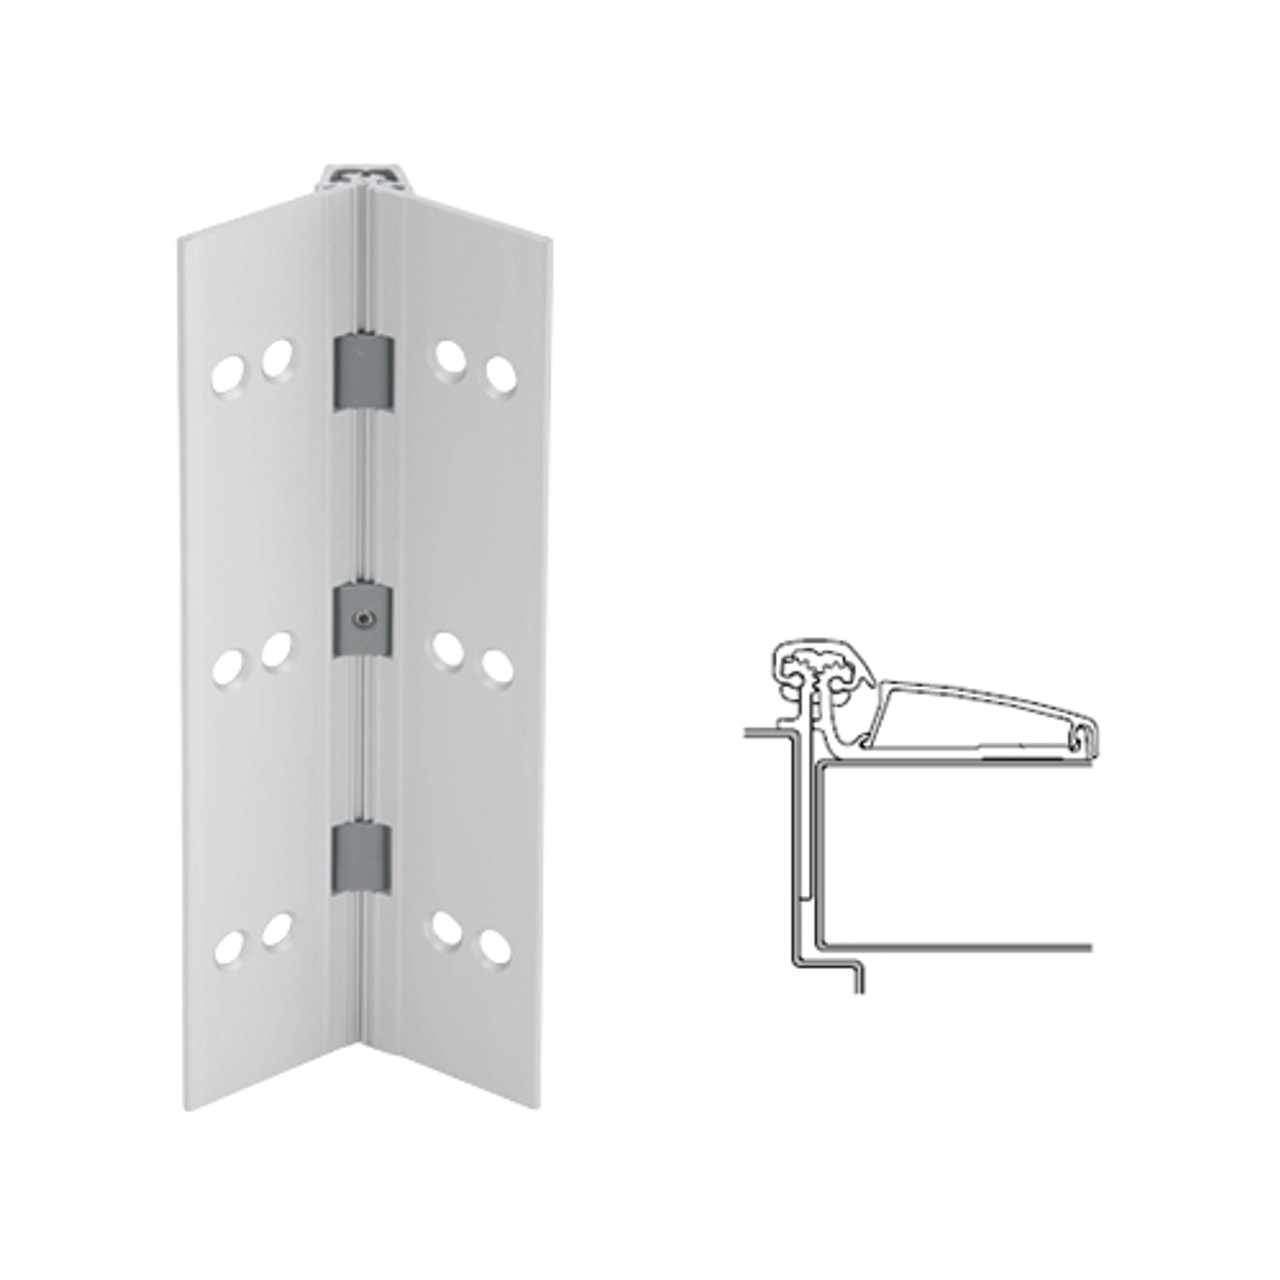 045XY-US28-83-SECWDHM IVES Adjustable Half Surface Continuous Geared Hinges with Security Screws - Hex Pin Drive in Satin Aluminum